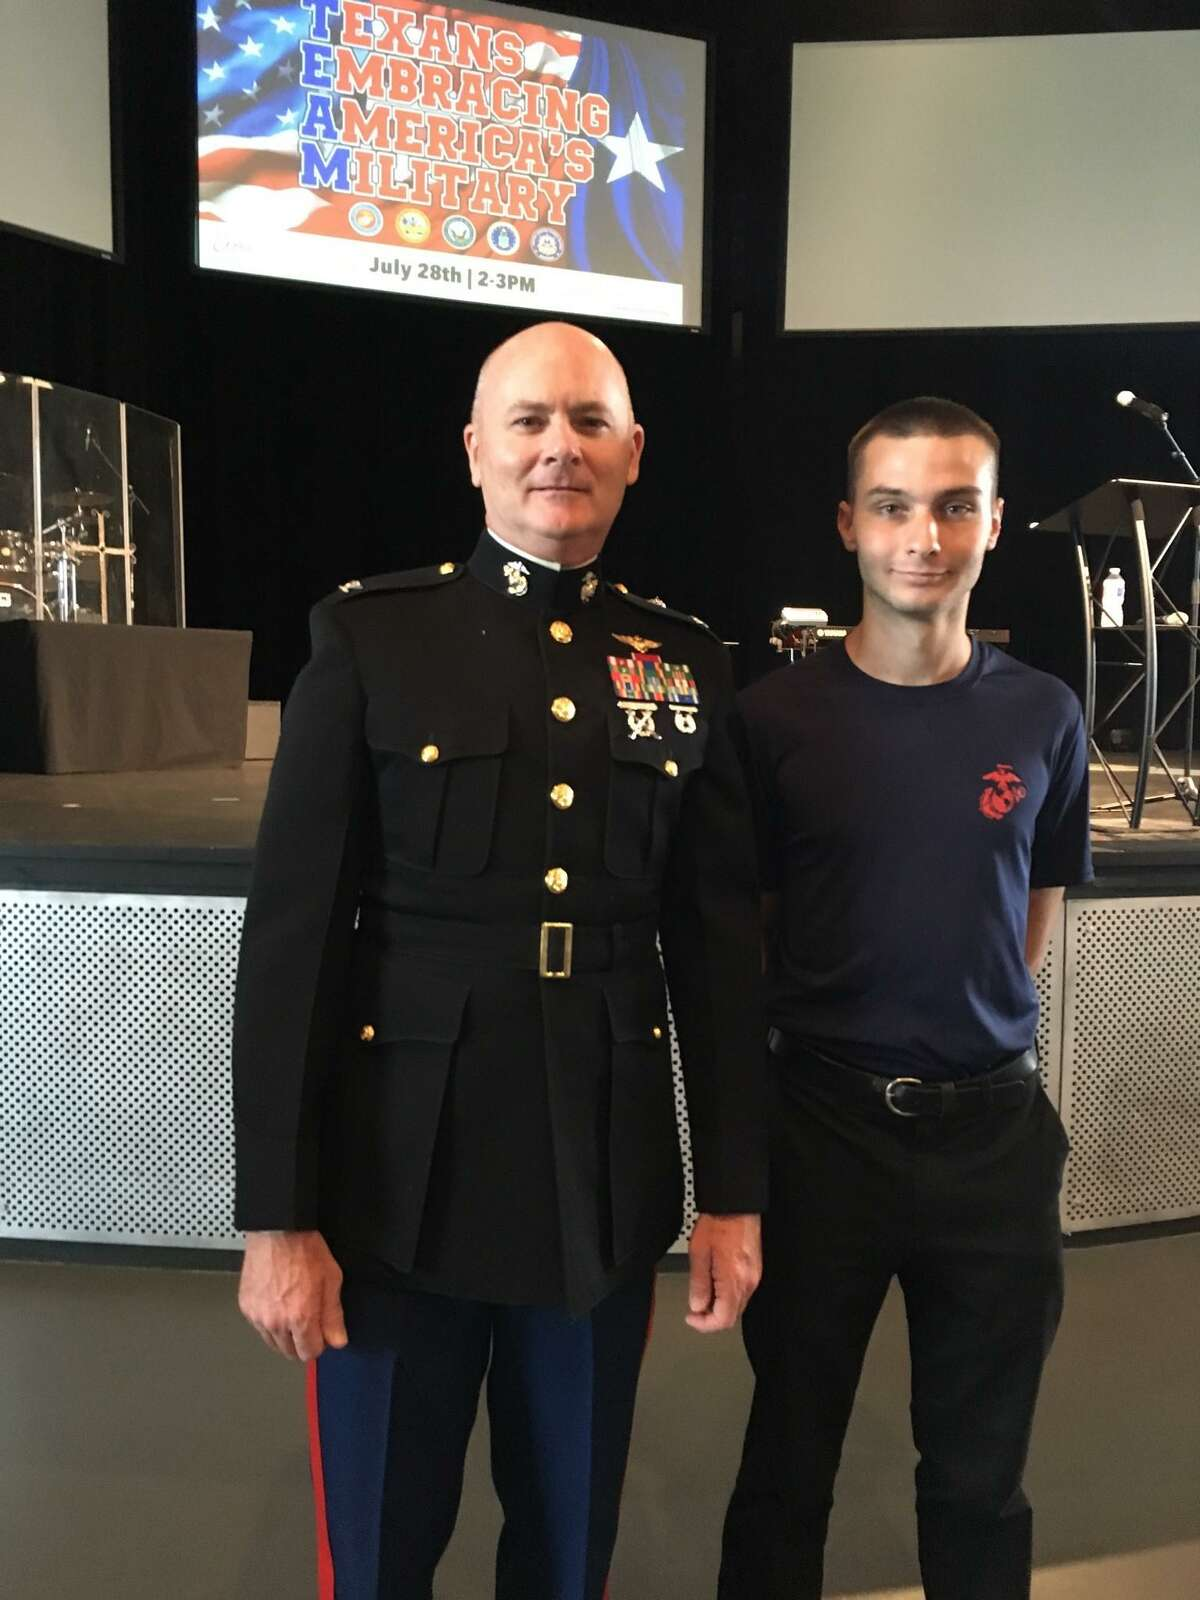 The Texans Embracing America's Military featured retired U.S. Marine Corps Col. James E. Rector of Cypress, left, as the keynote speaker and U.S. Marine recruit Kyle Stevenson.